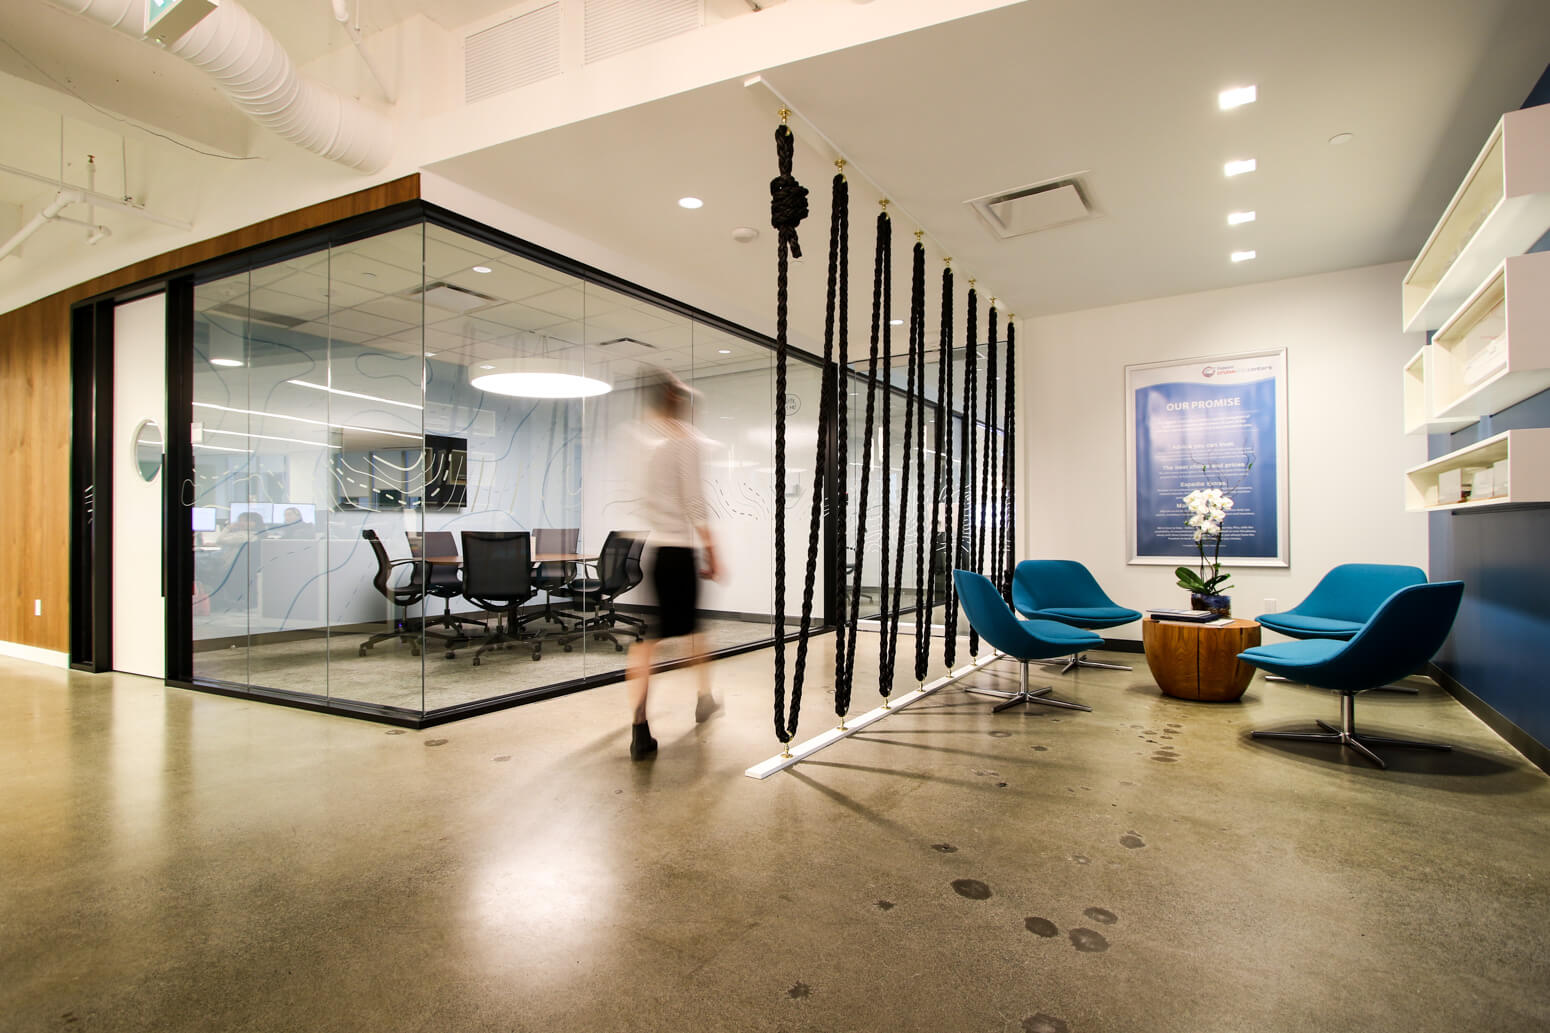 Every Workstation Is Modular And Can Be Converted Into Standing Position When The Mood Strikes Breakout Workstations Meeting Spaces Are Spread Around